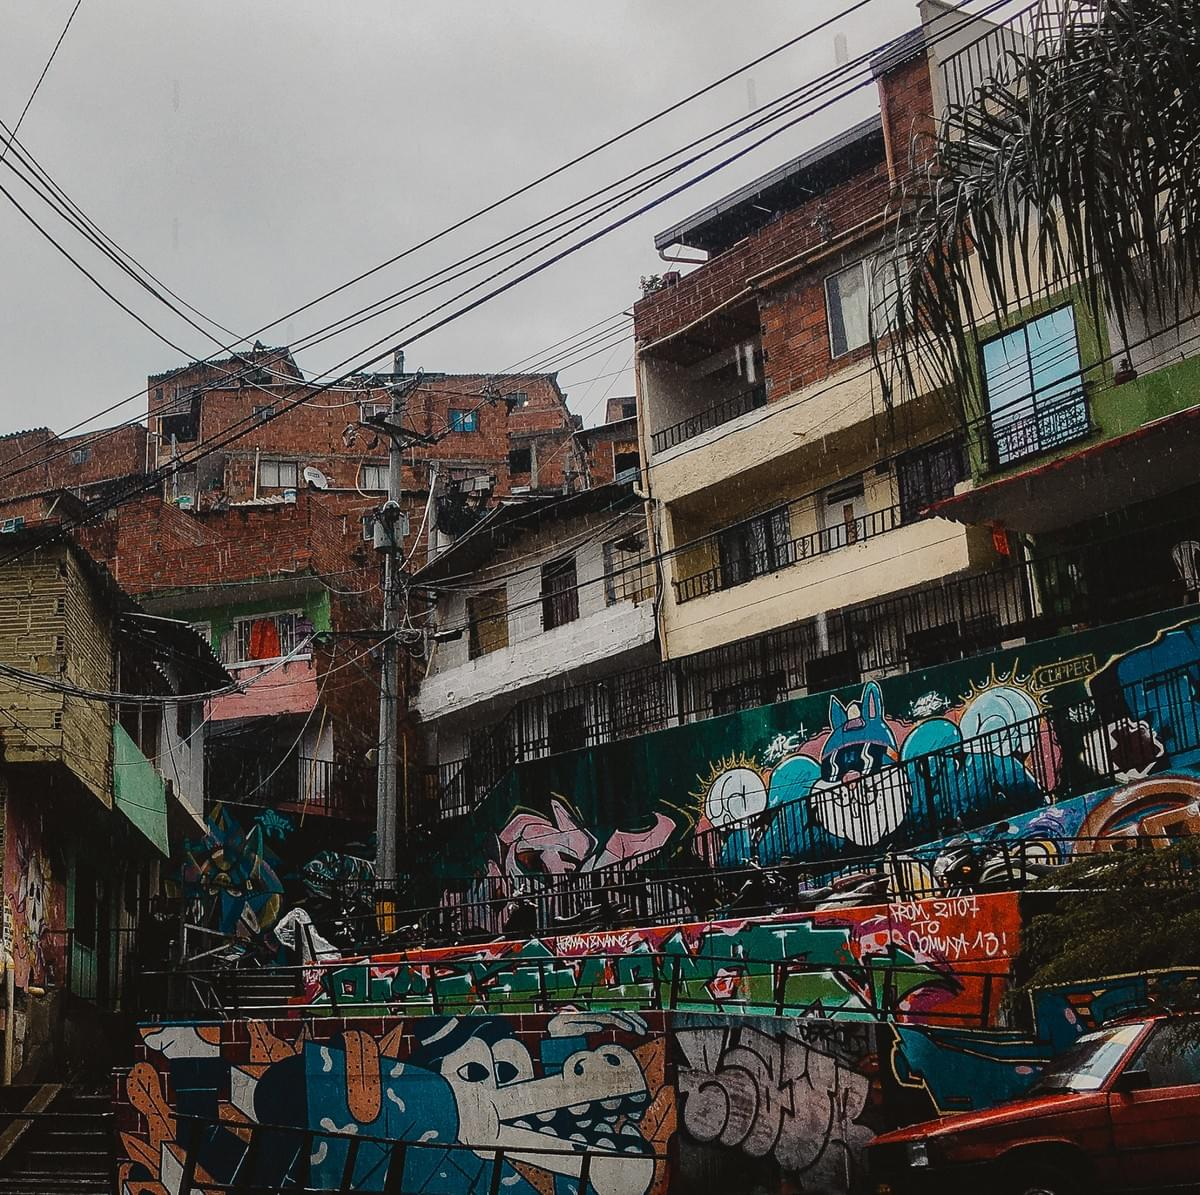 Street art along stairwell and ramp comuna 13 Commune 13 San Javier in medellin